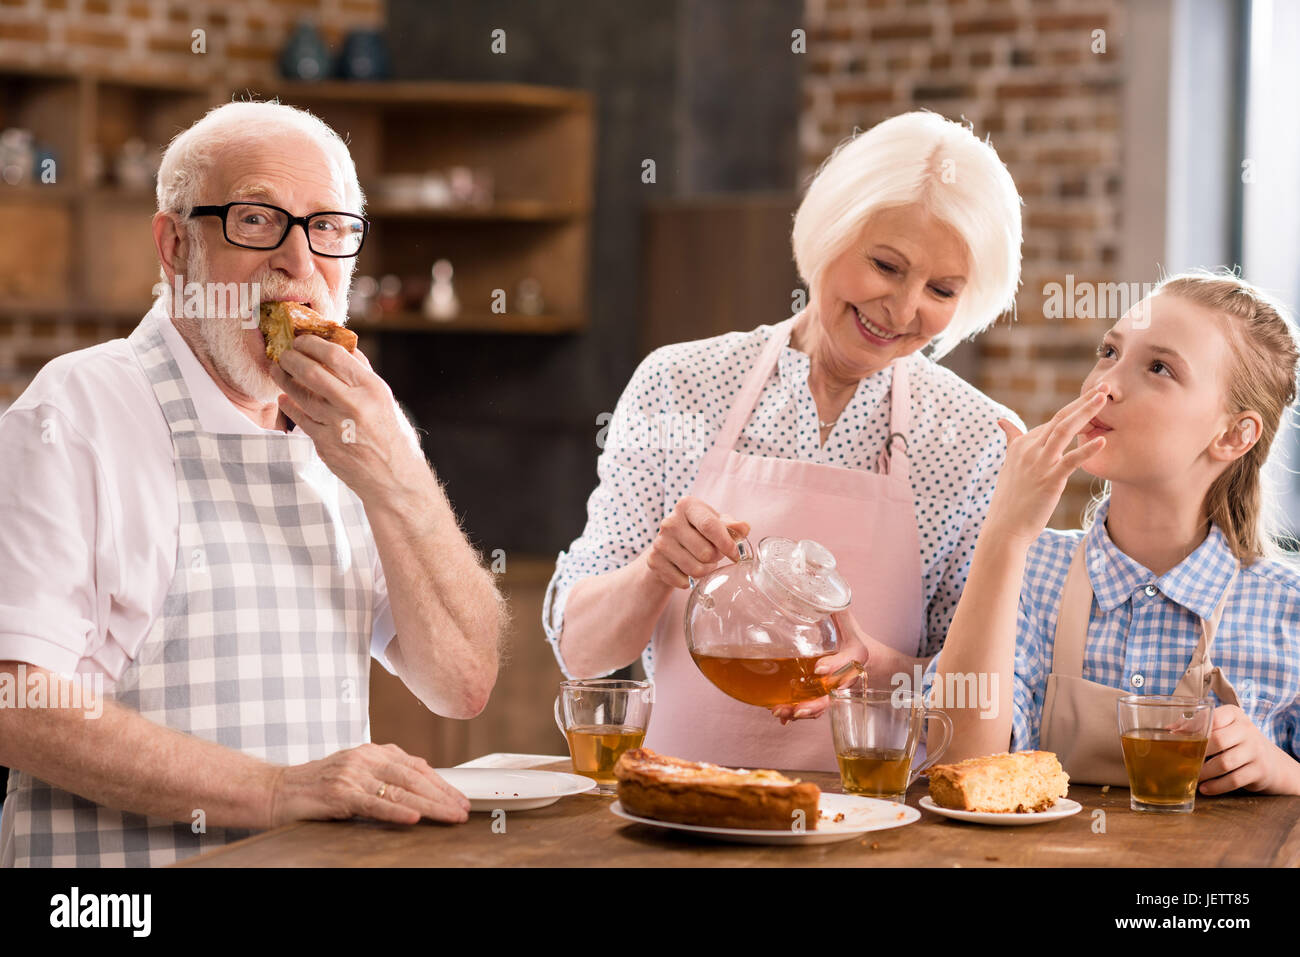 grandparents and girl drinking tea with pie together at home - Stock Image